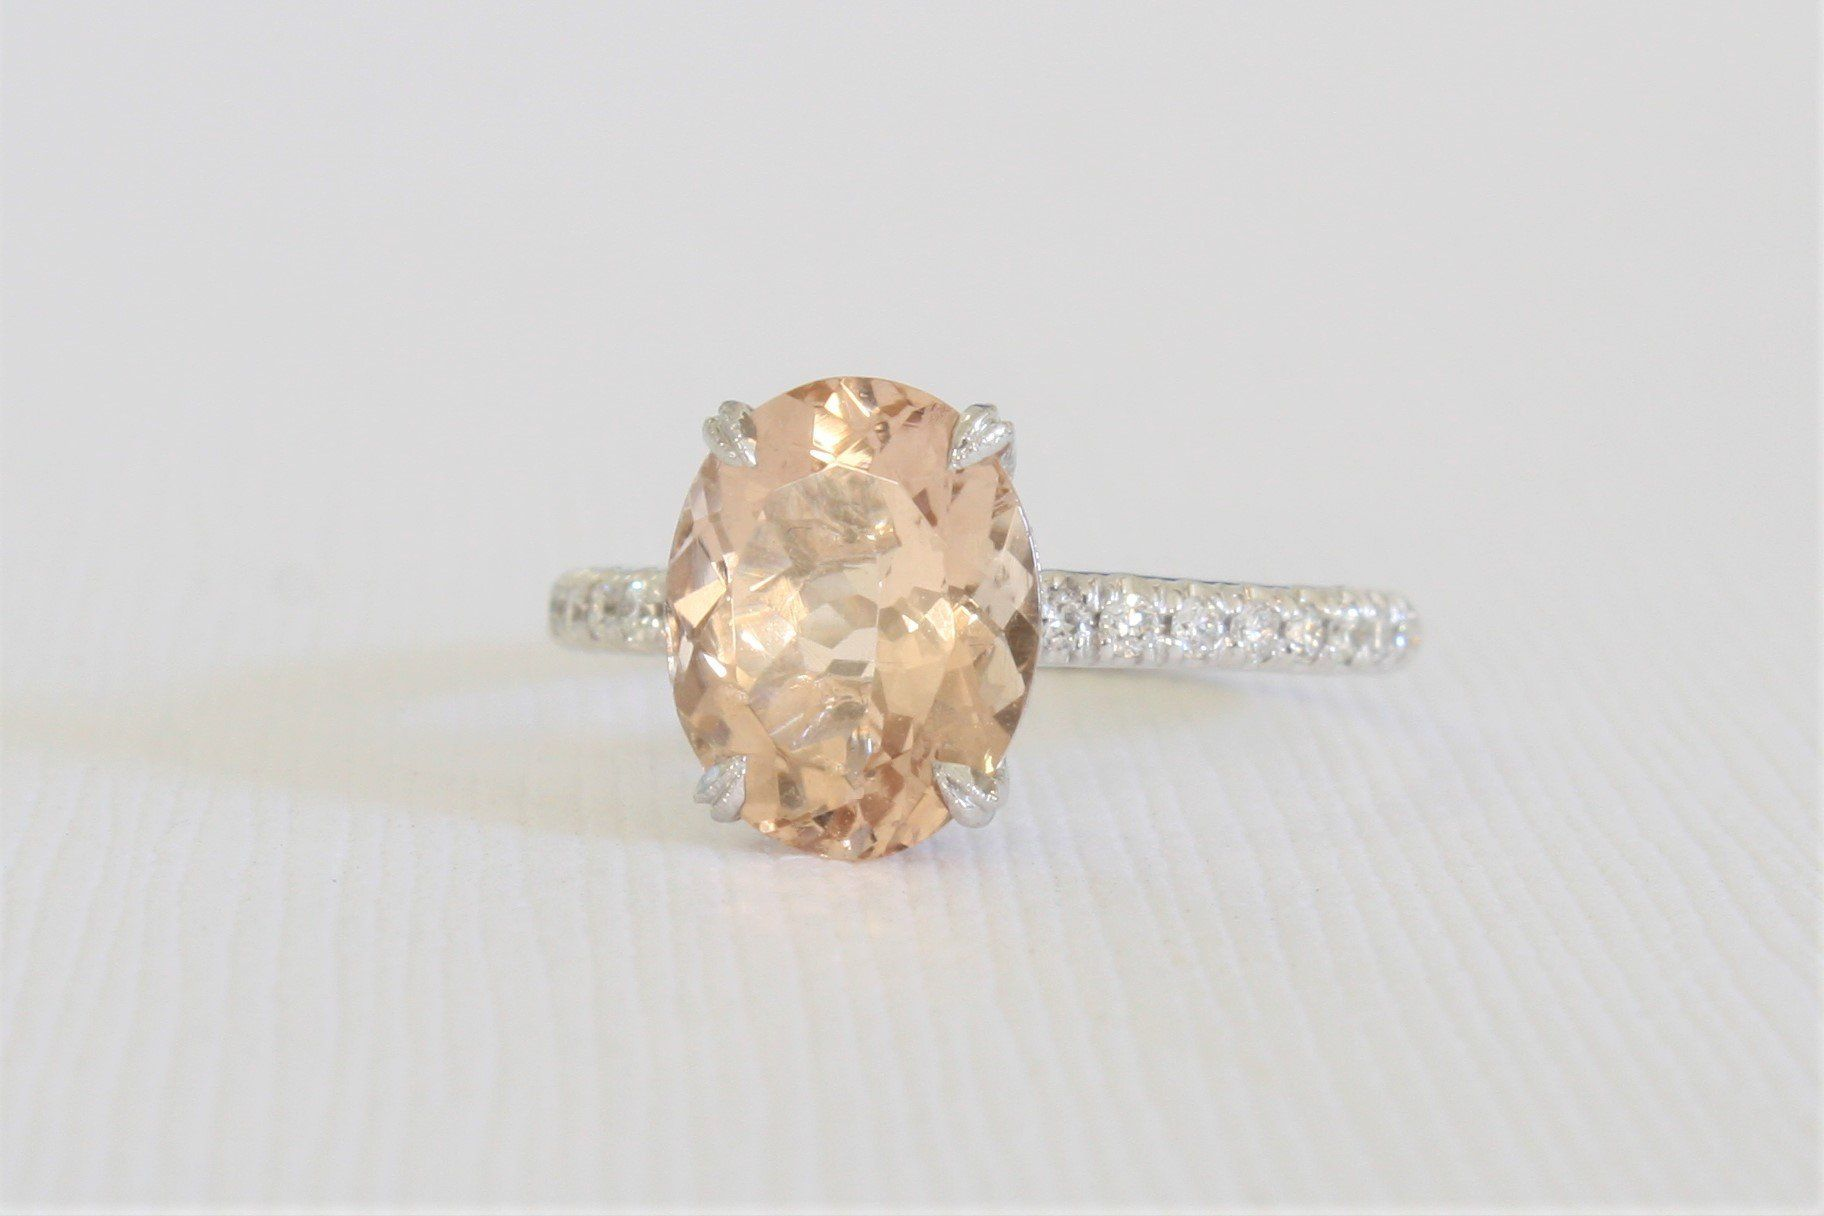 2.39 Cts. Morganite Solitaire Diamond Engagement Ring in 14K White Gold